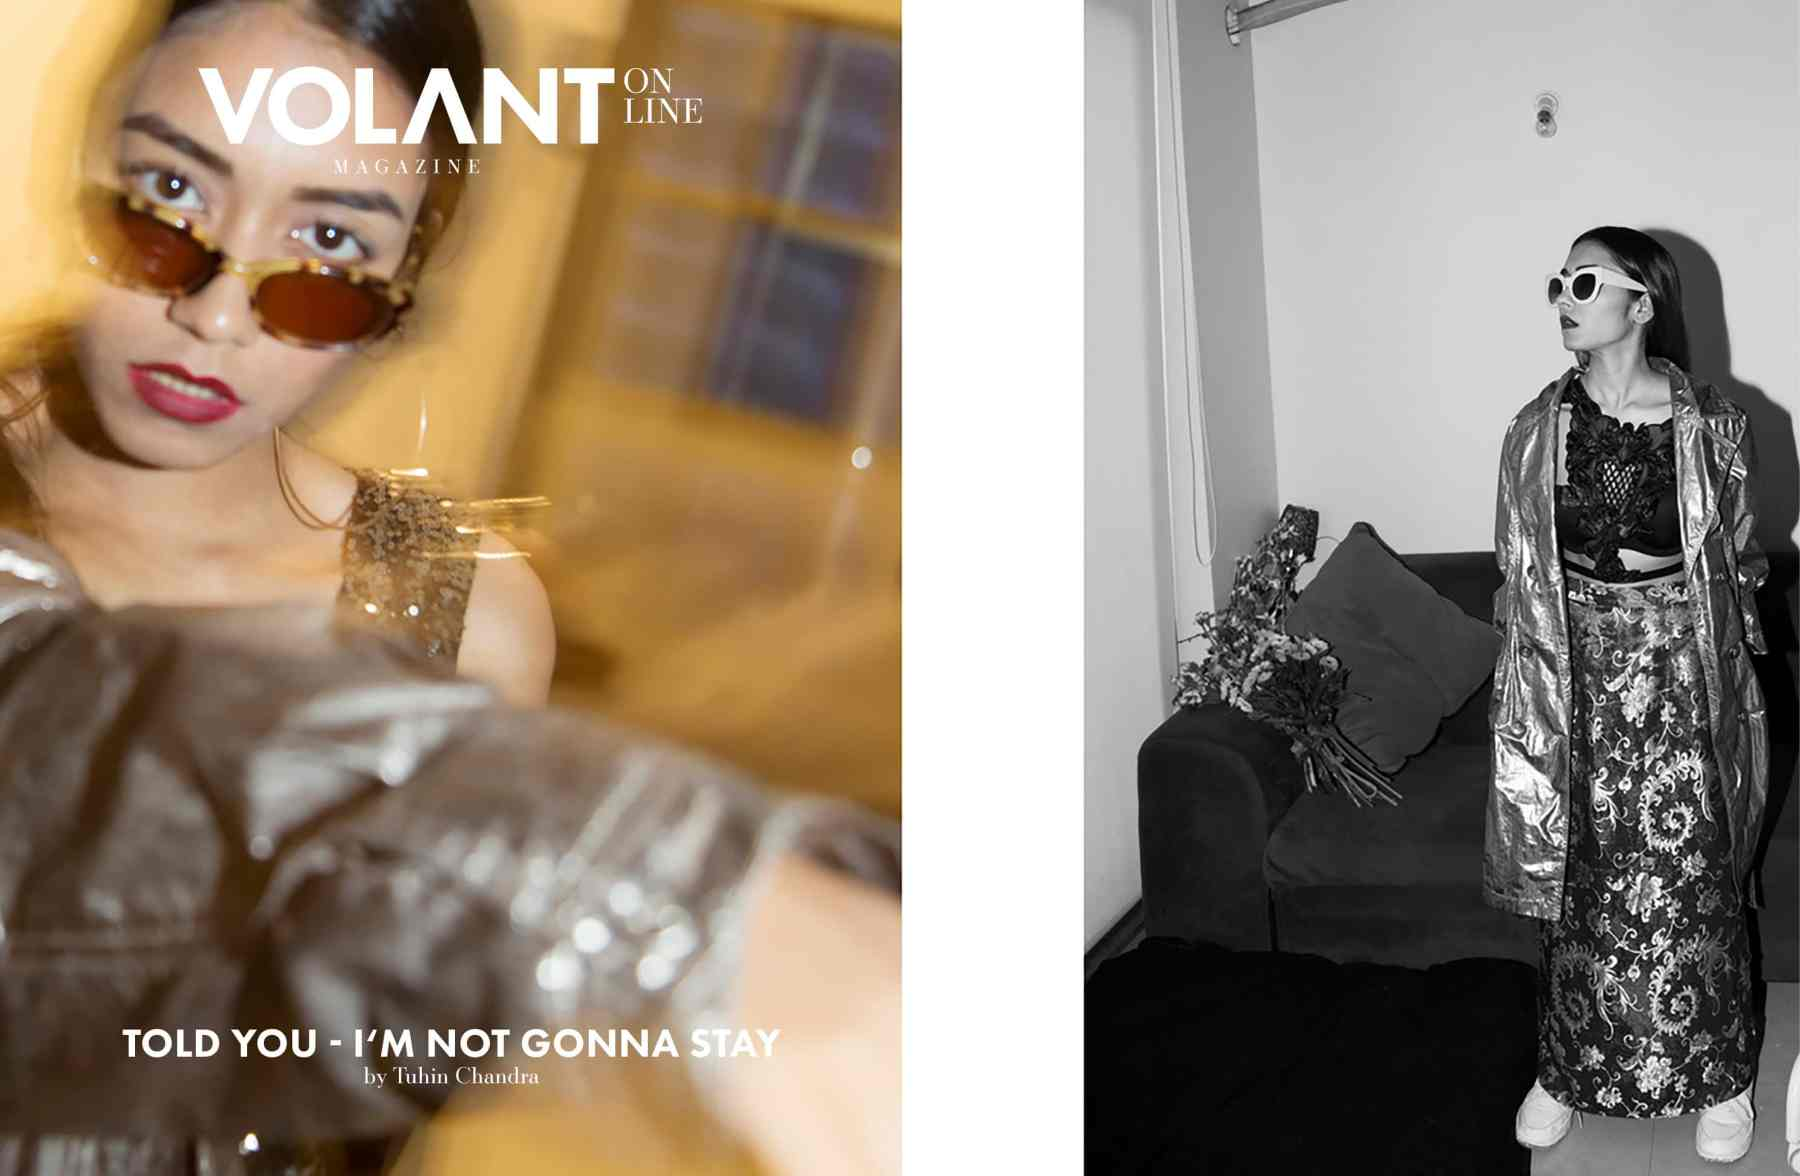 volant-webitorial-toldyou